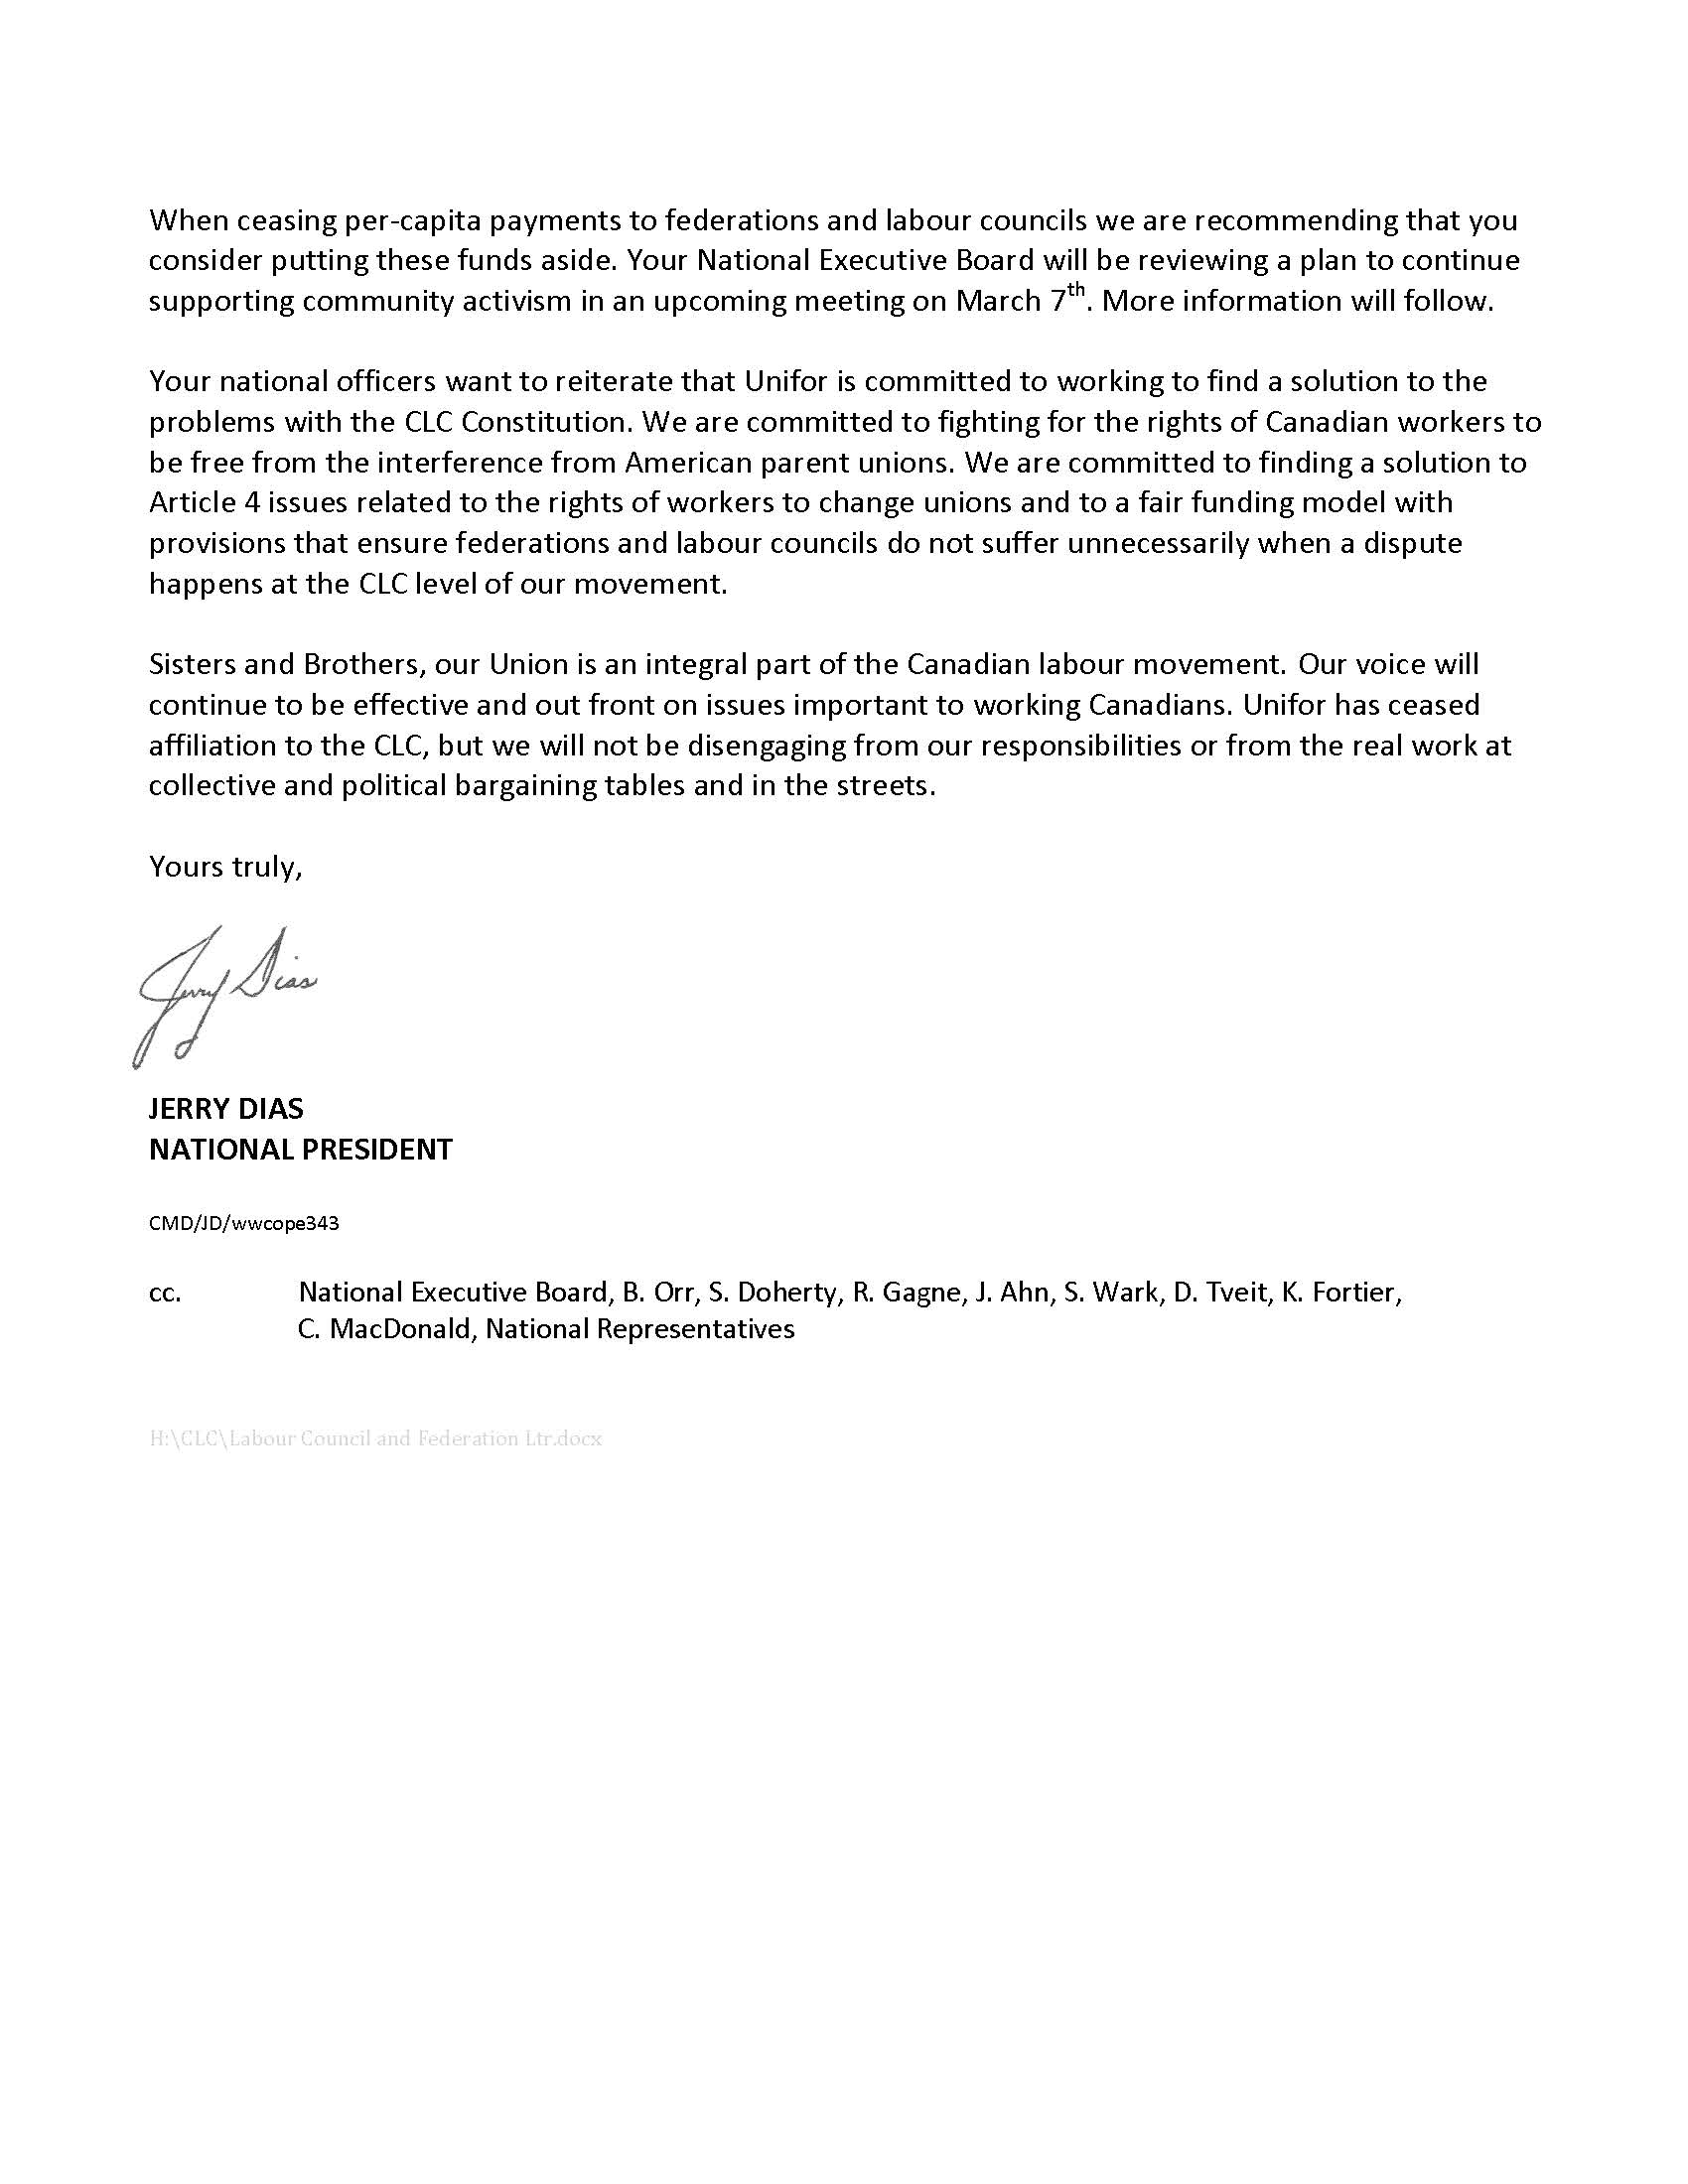 Labour Council and Federation Ltr_Page_2.jpg